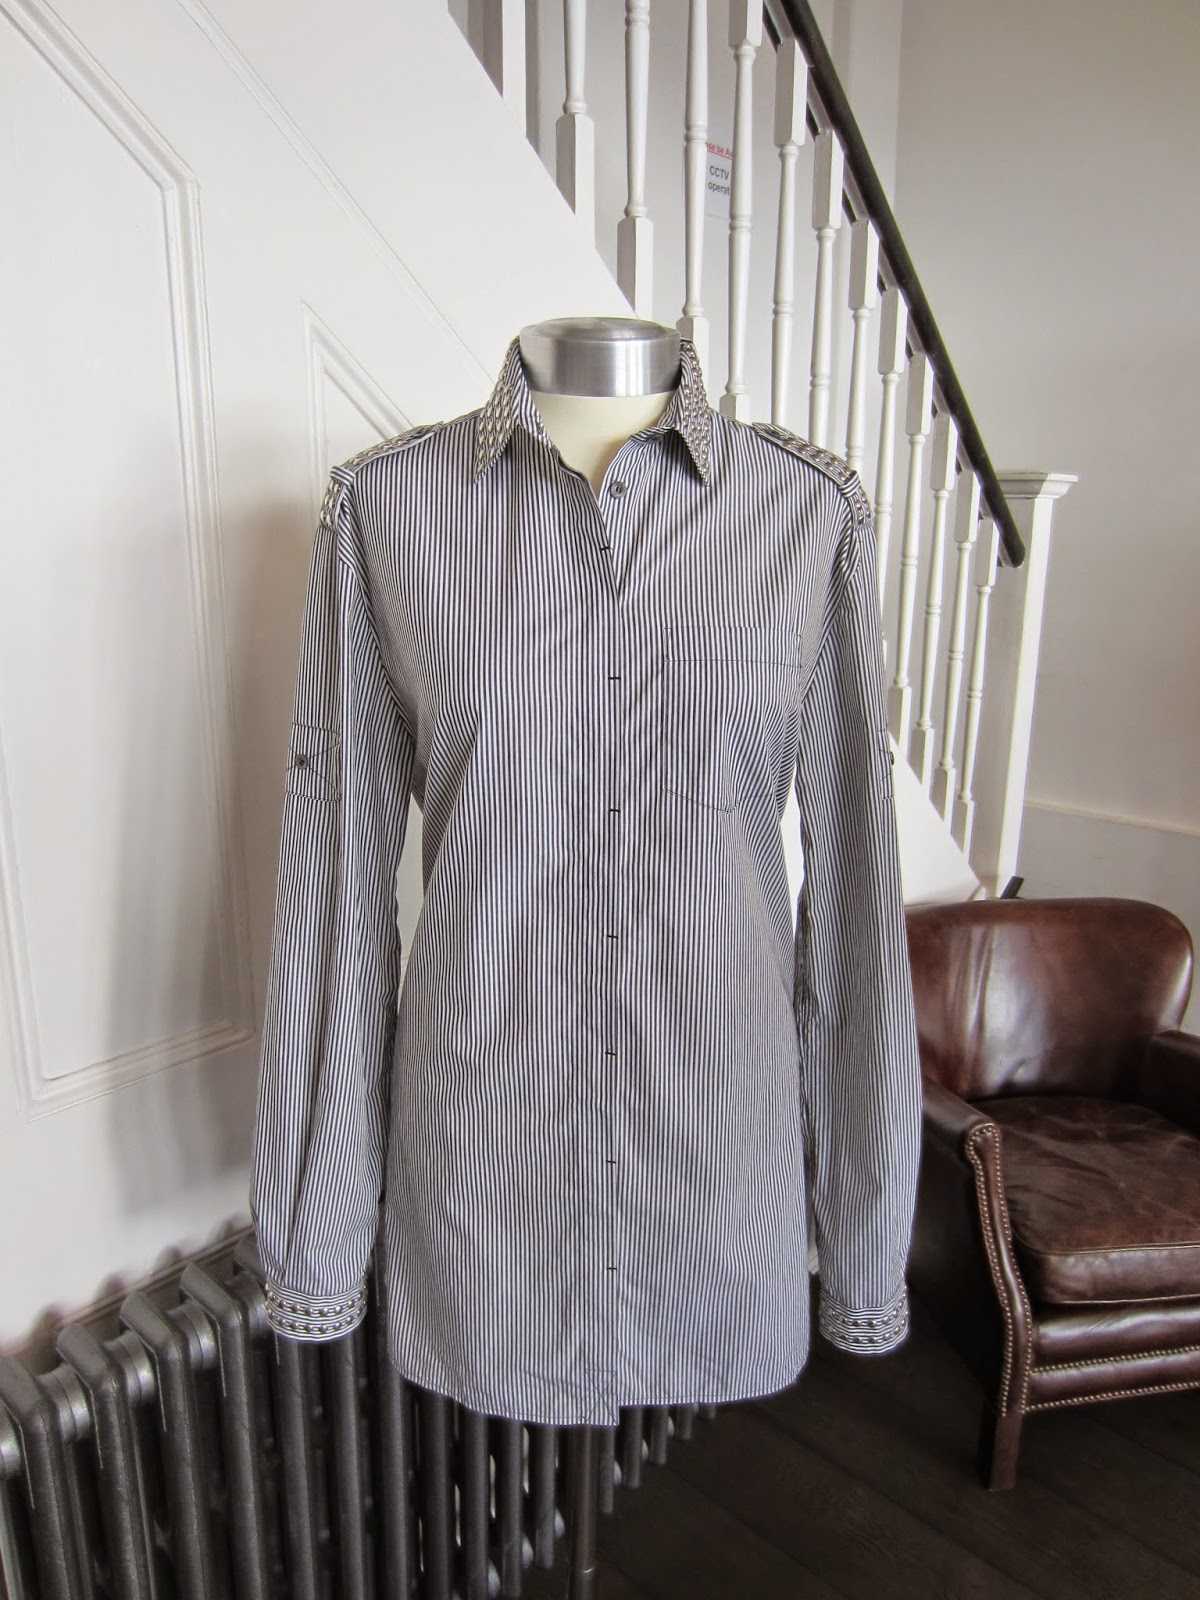 Pierre Balmain Grey & White Striped Shirt with Silver Studded Collar & Cuffs